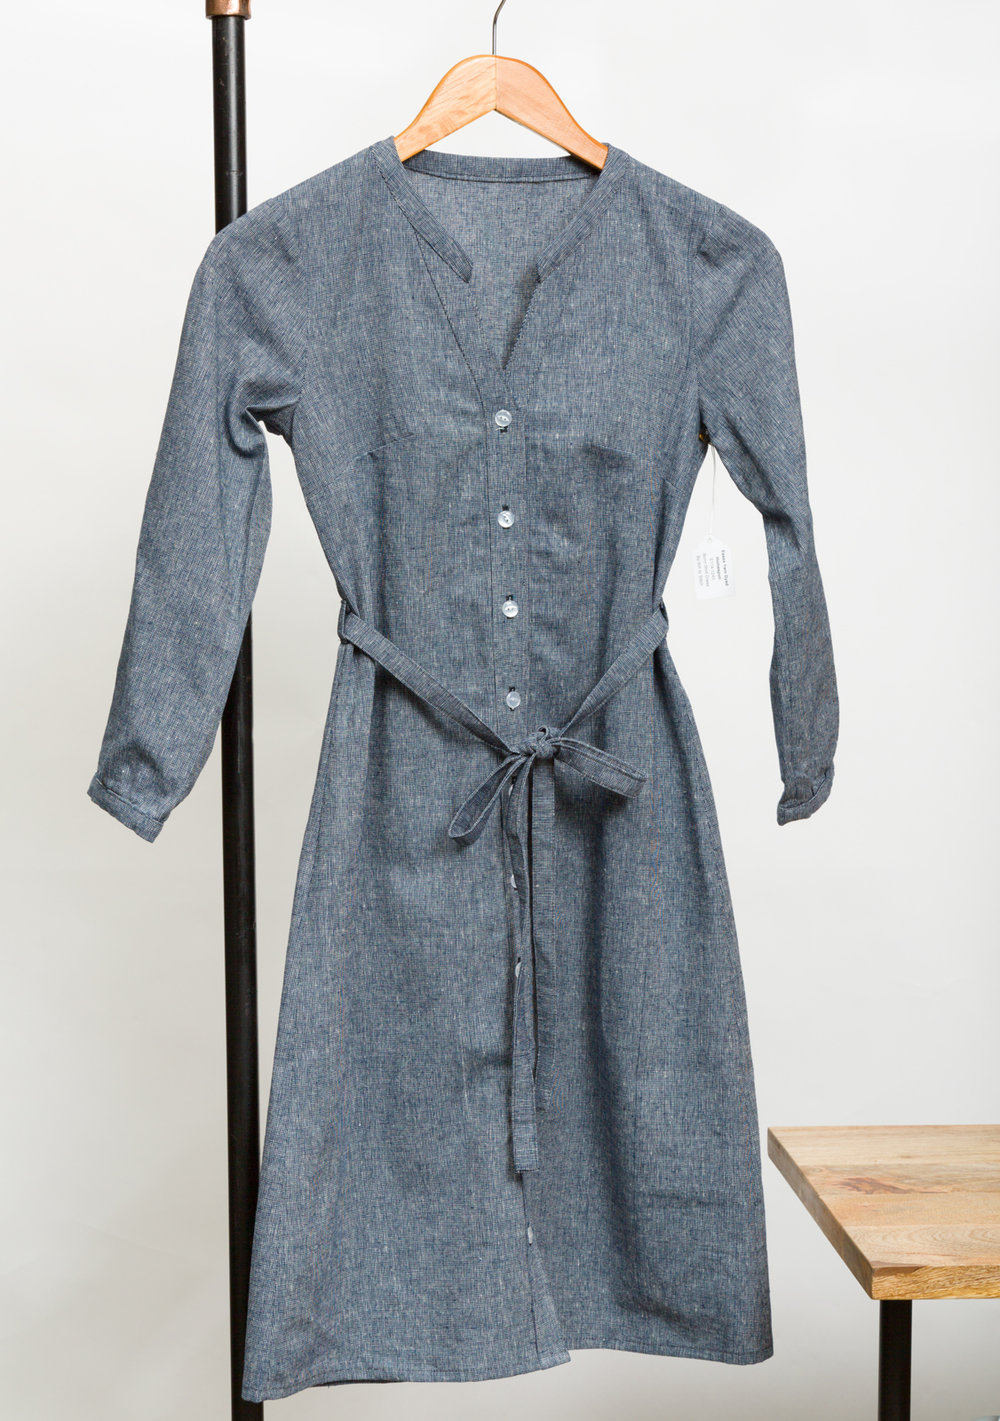 BONN SHIRT DRESS  DESIGNED BY  ITCH TO STITCH , MADE BY   PINK SUEDE SHOE ,  FEATURING   ESSEX YARN DYED HOMESPUN(E114-1243)